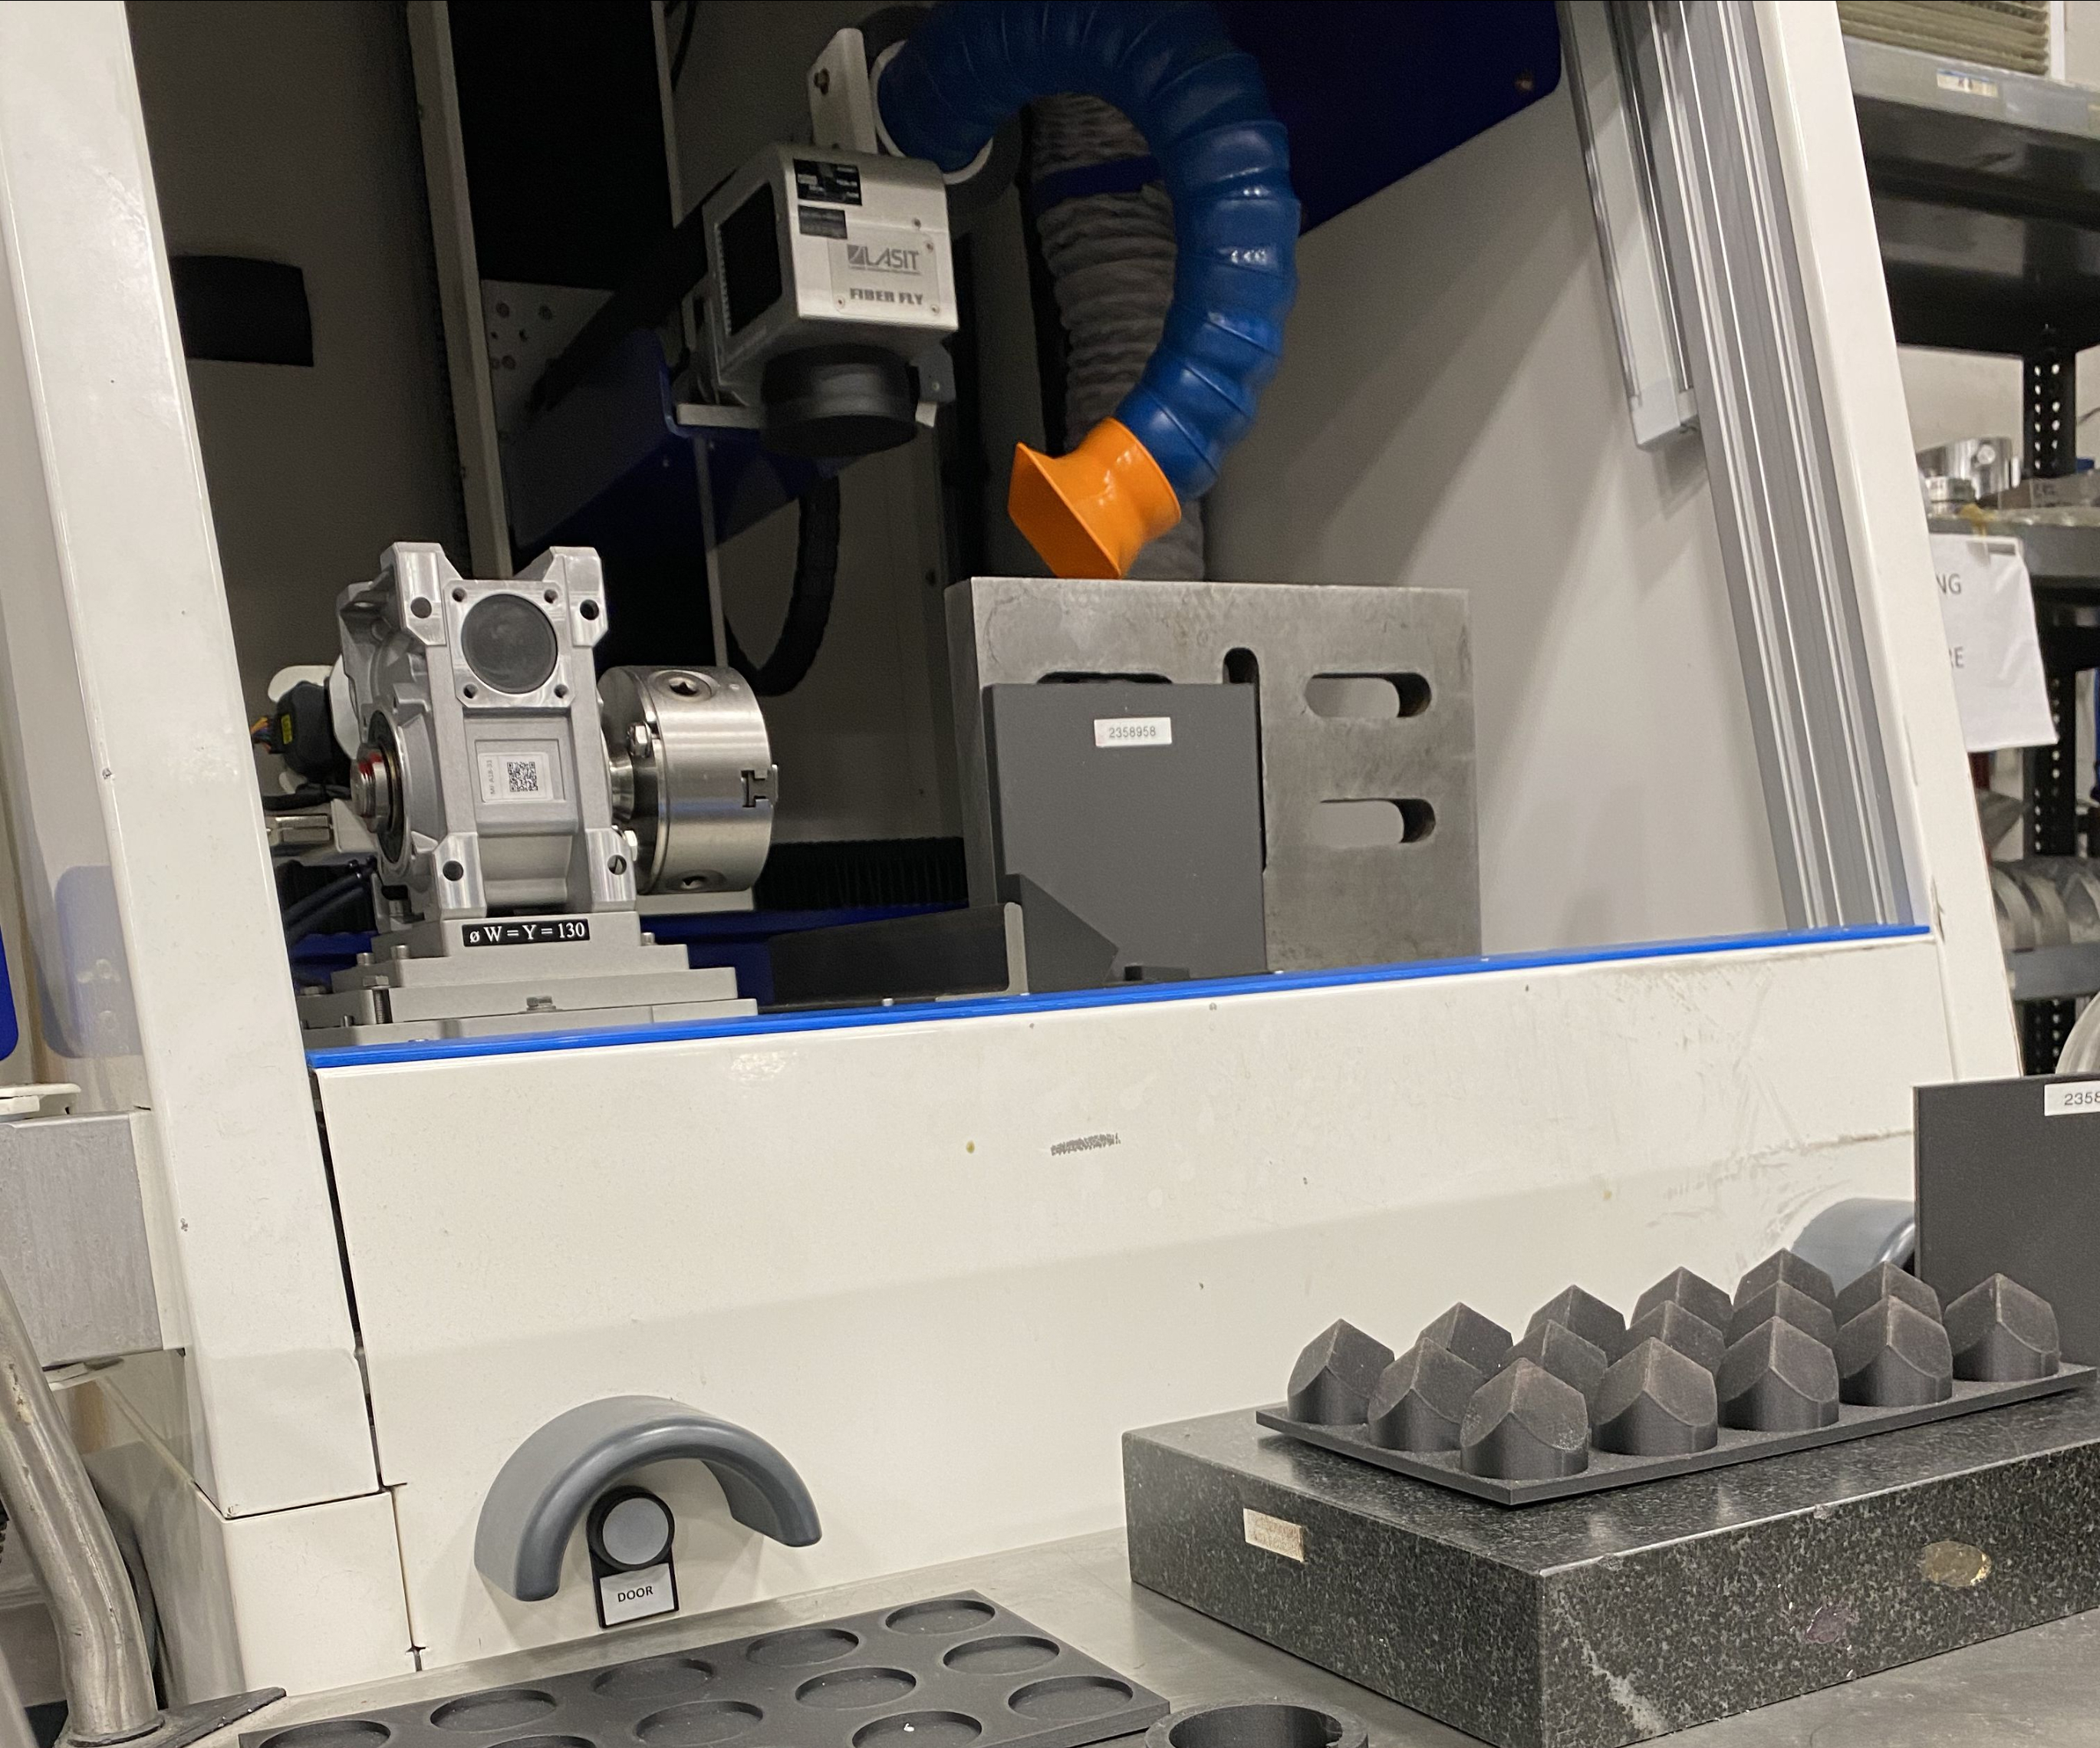 3D-printed fixtures for CNC machined parts are arrayed in front of a part-marking machine at Advanced Precision Engineering (APE).